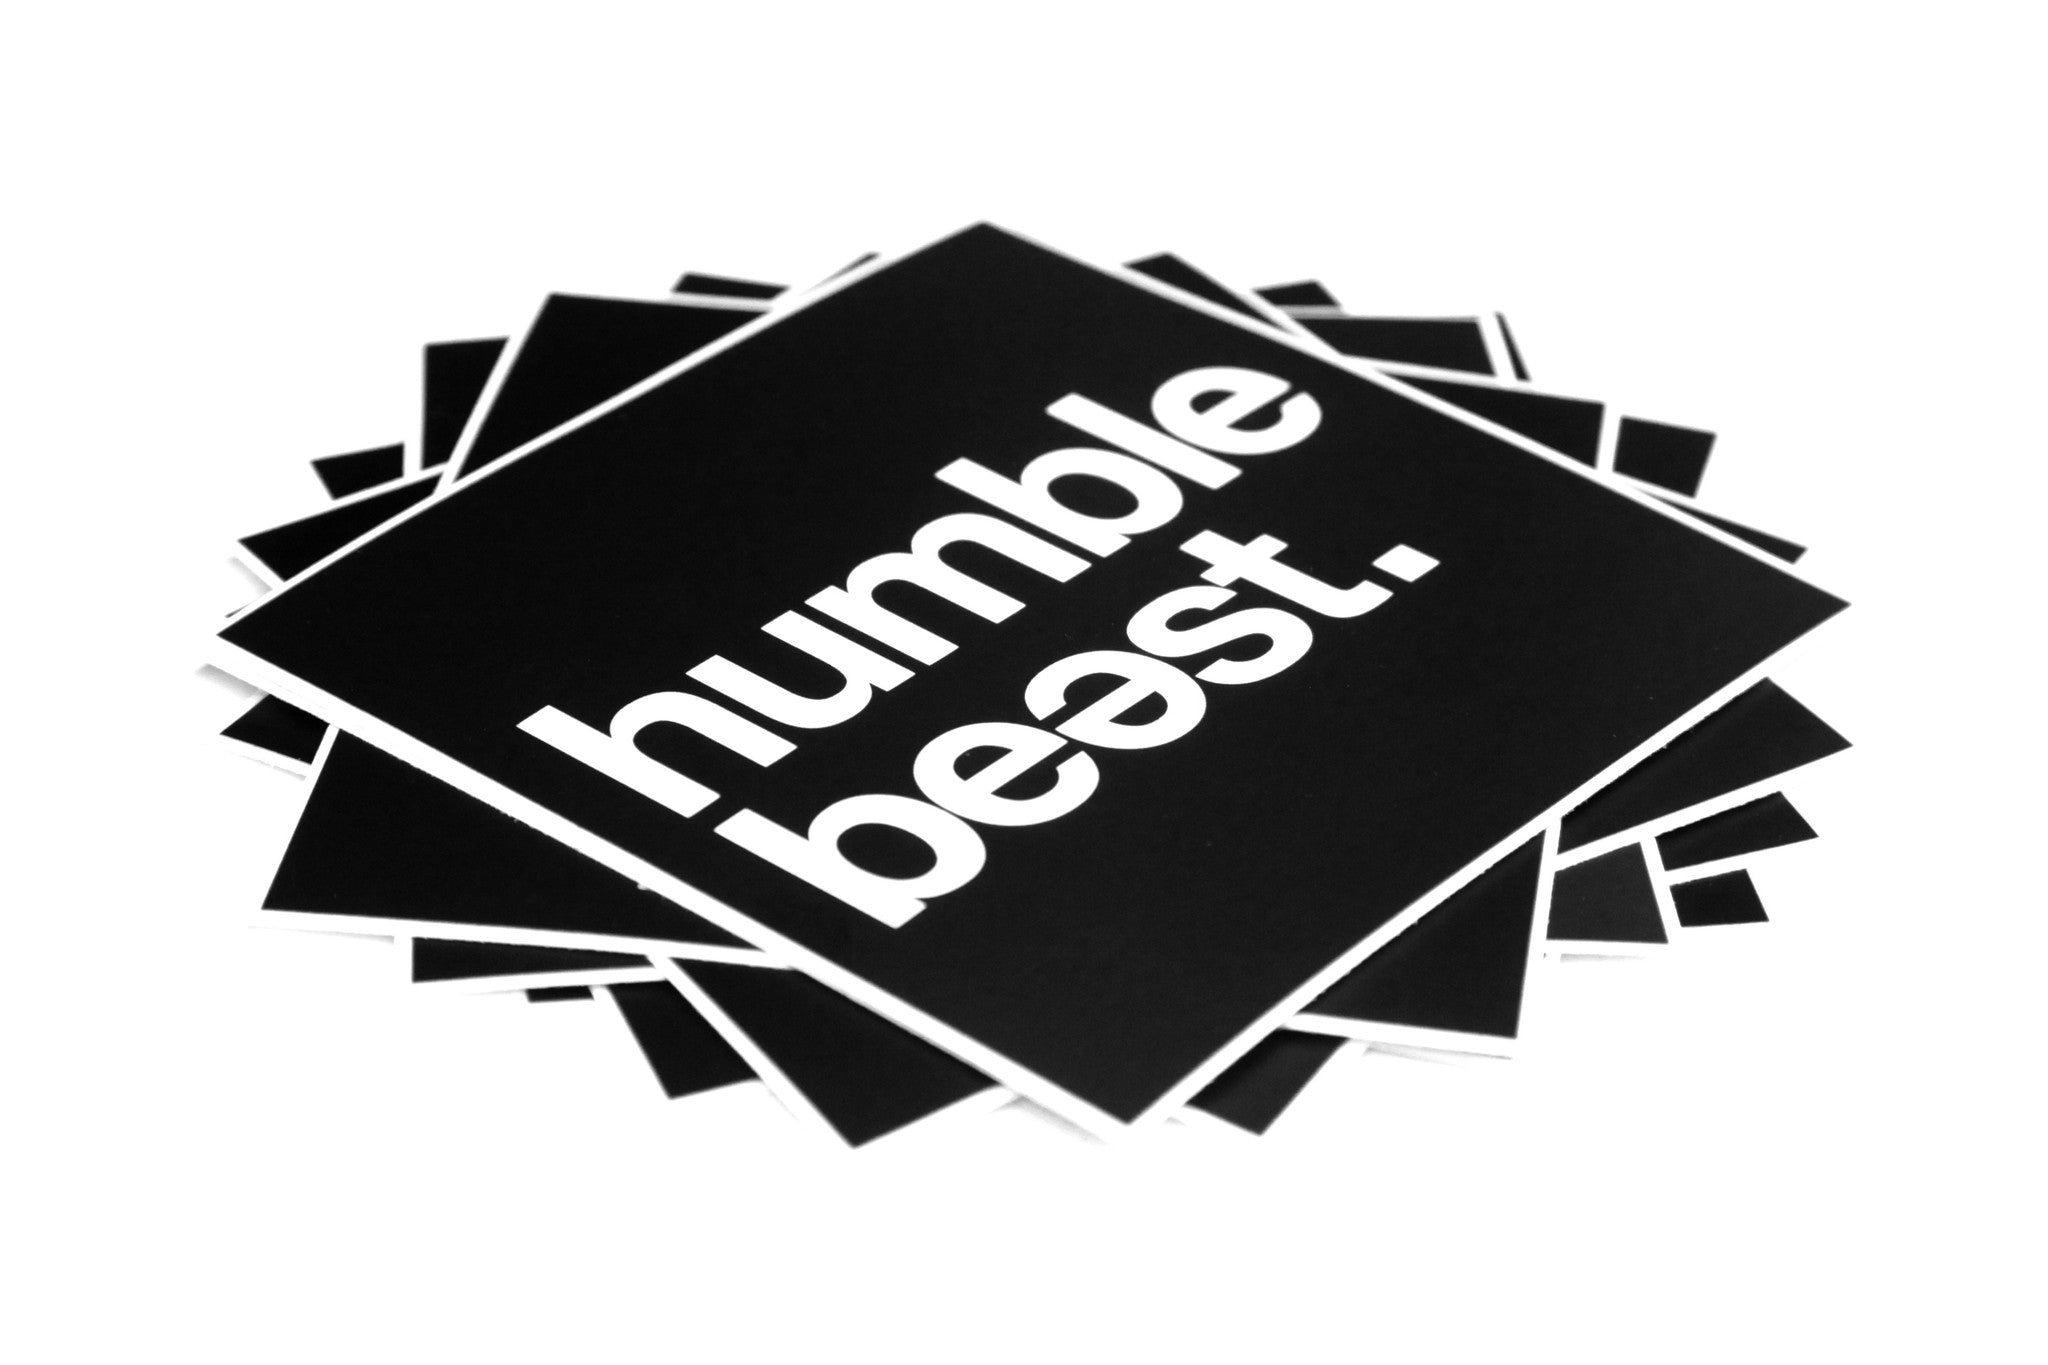 Humble Beast - Sticker 10 Pack